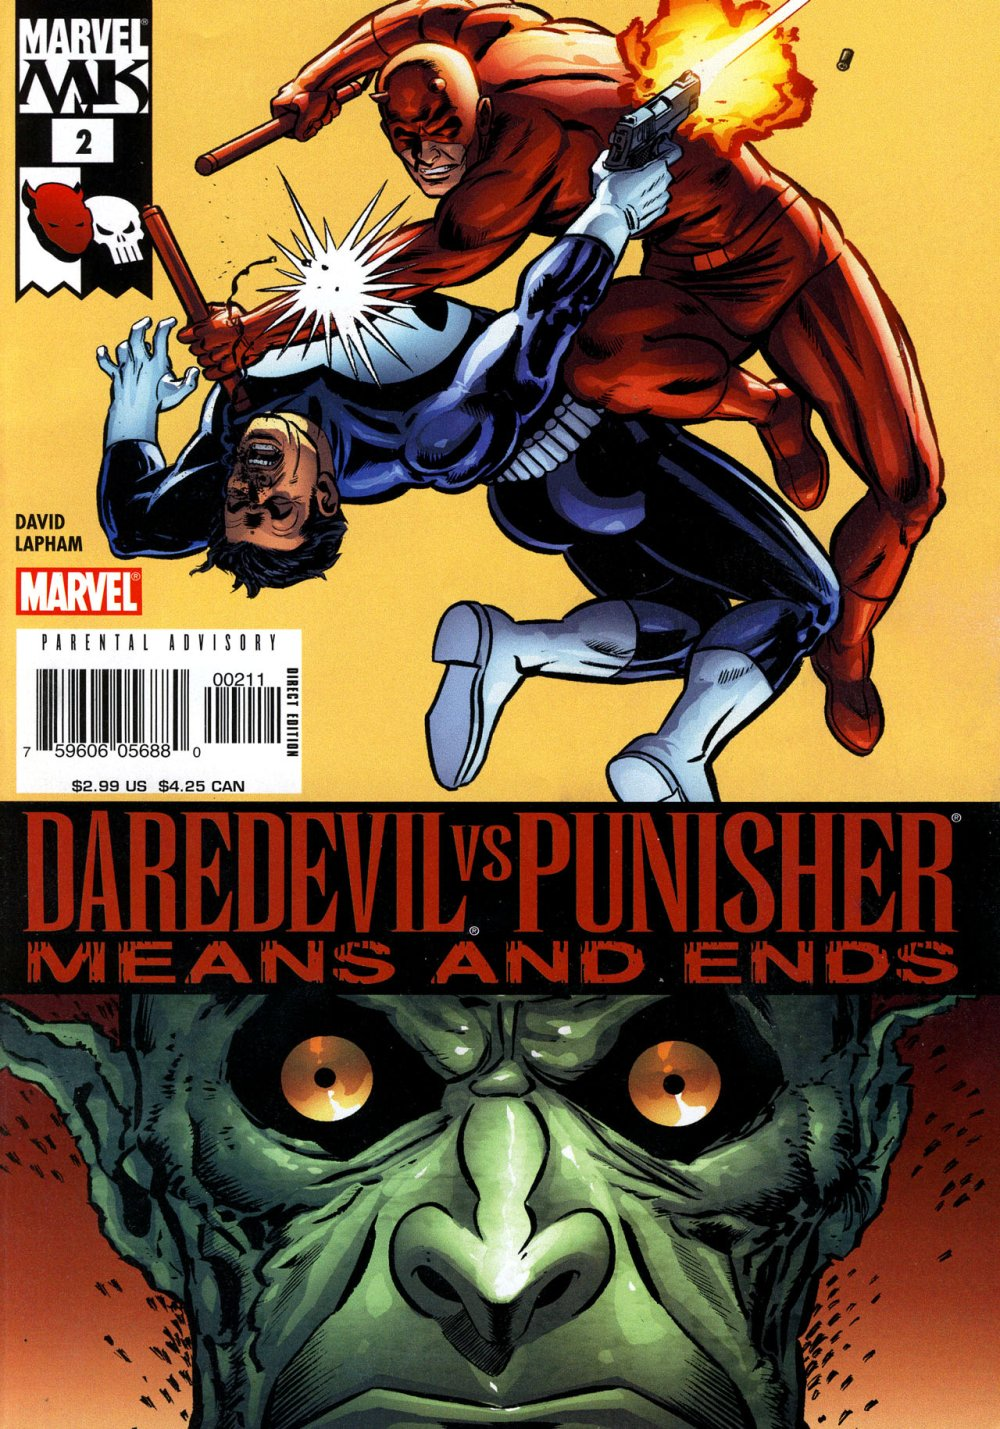 Daredevil- Vs Punisher- Means And Ends [Marvel Knights] Mini 1 0002.jpg